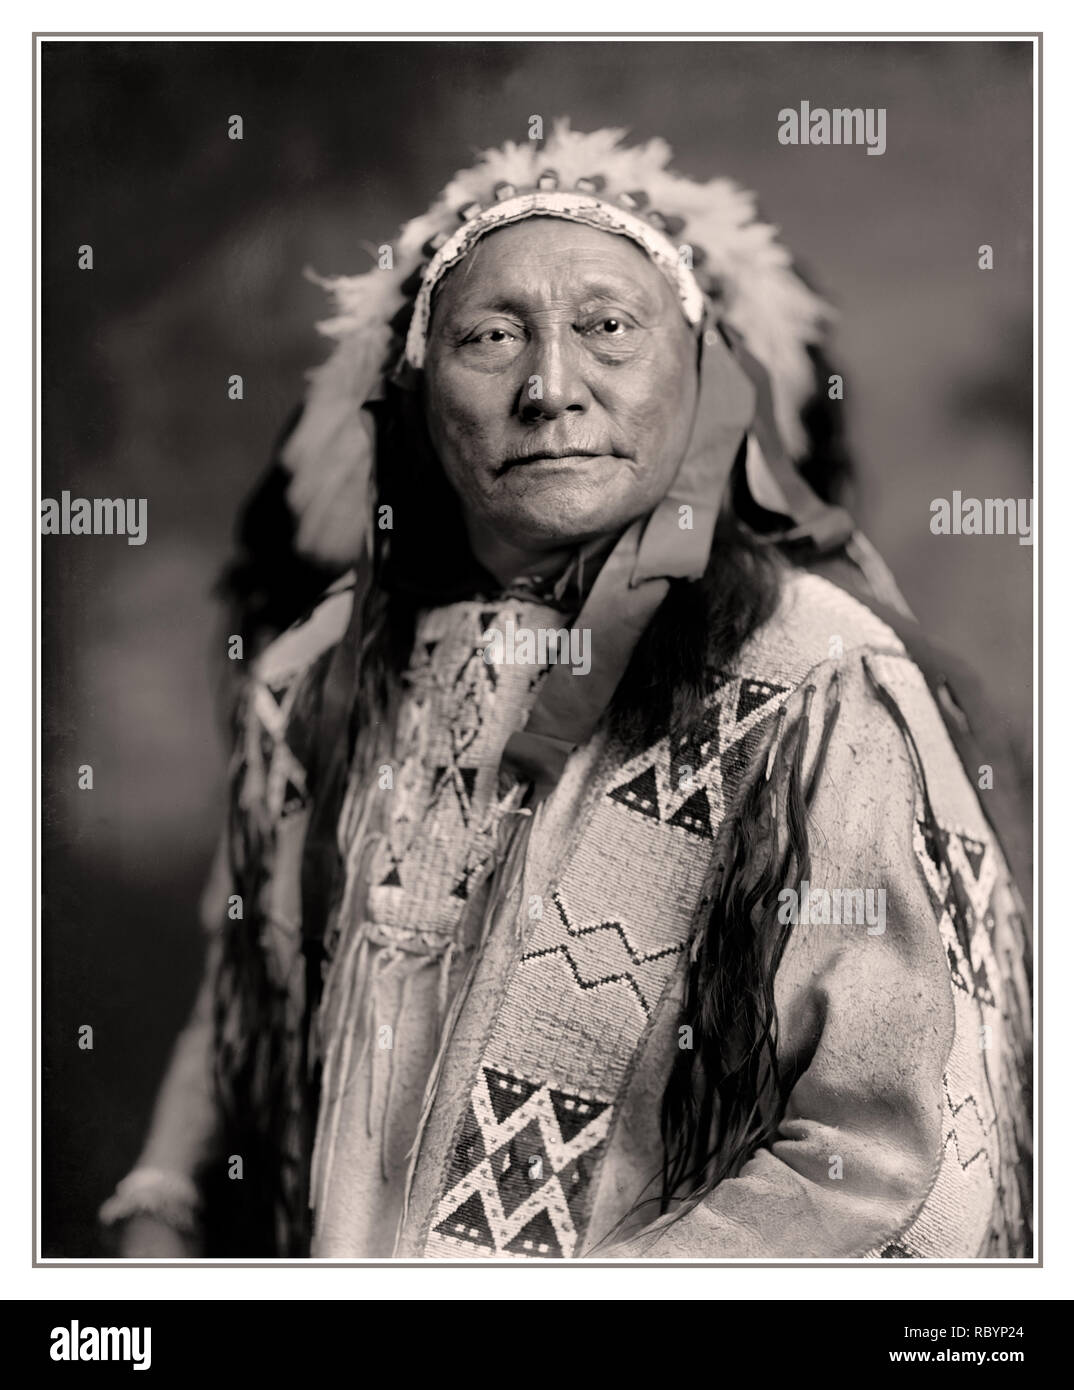 Archive North American Native Tribal Leader HOLLOW HORN BEAR Hollow Horn Bear (1850 – 1913)  a Brulé Lakota leader, who fought in a number of battles, including that at Little Big Horn. He later testified before the US Supreme Court in the case of Crow Dog, rode in the inaugural parades of presidents Roosevelt and Wilson, and was featured on the five dollar bank note and a 1922 US postage stamp. - Stock Image